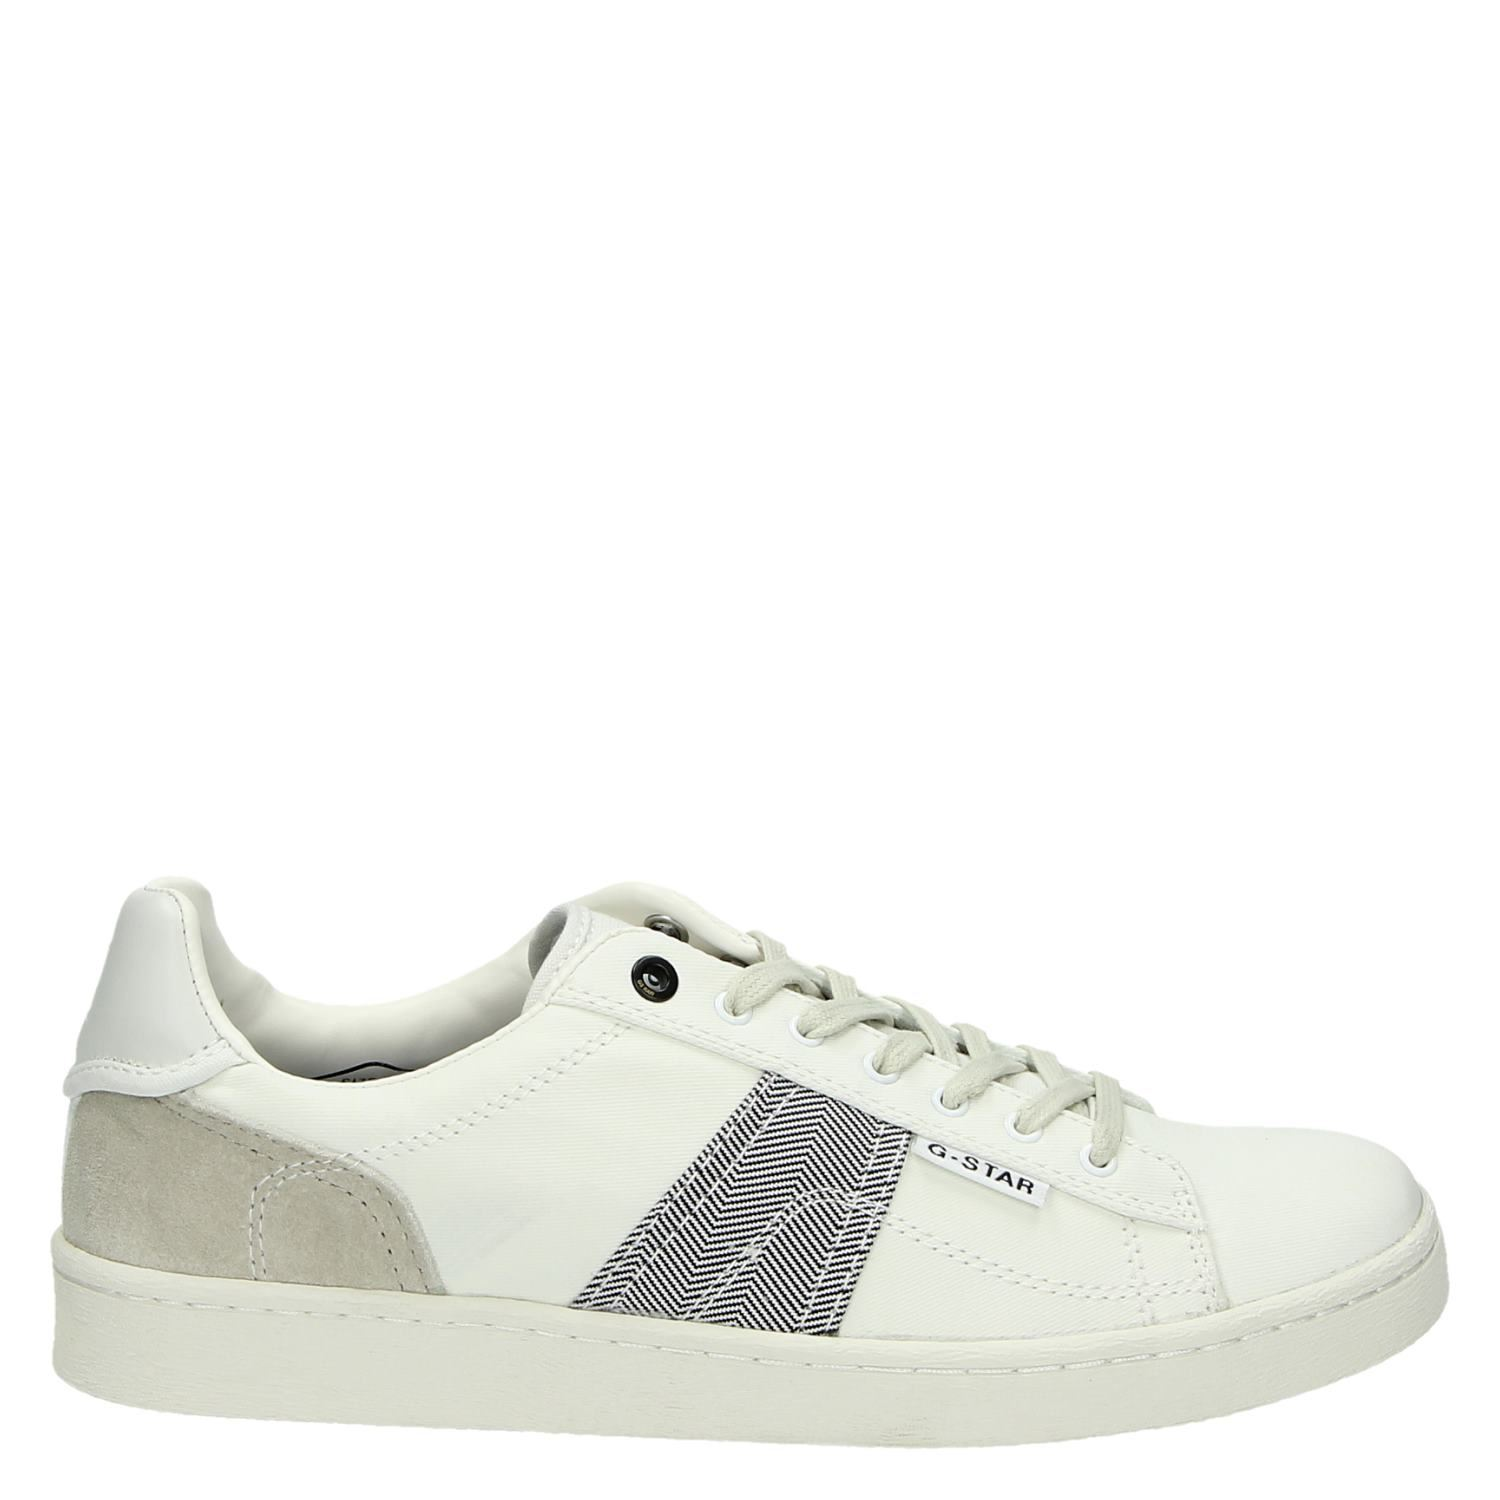 Chaussures Blanches G-star Pour Les Hommes v1v5u